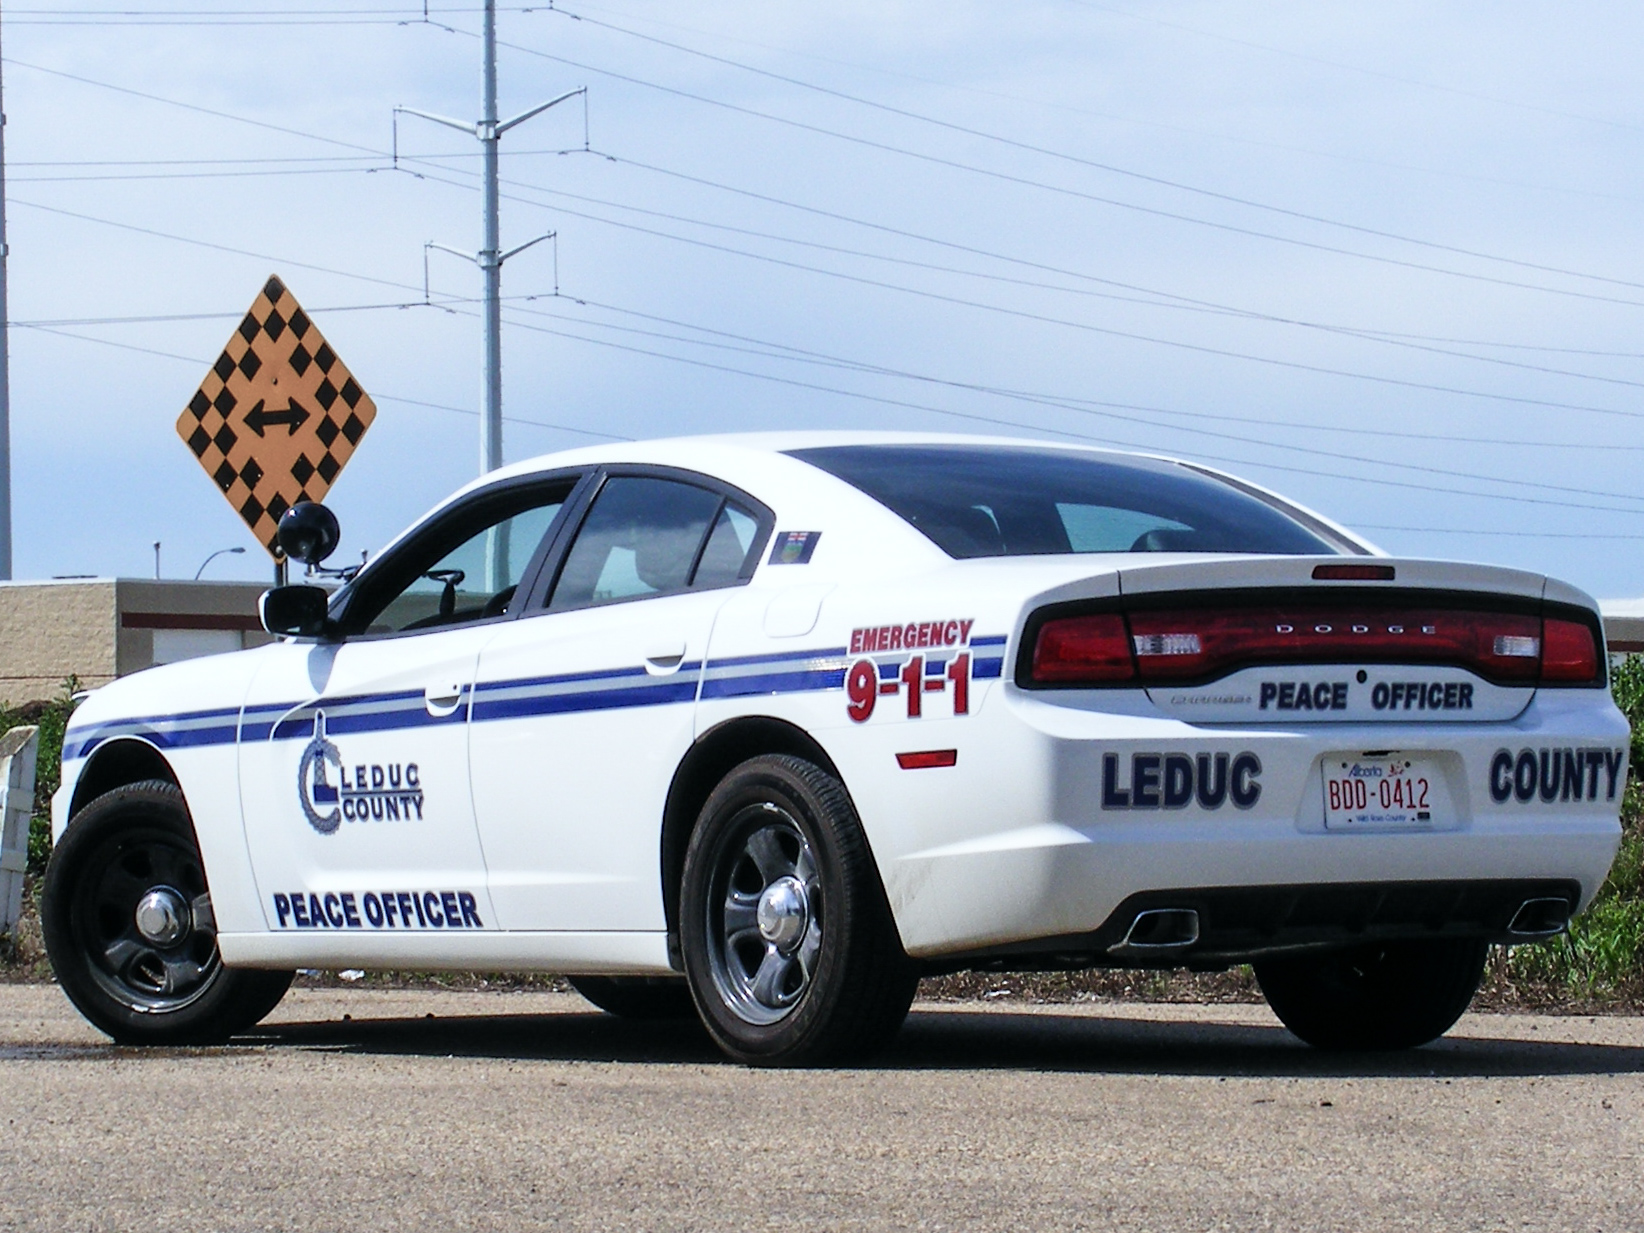 Leduc County Peace Officer decals.